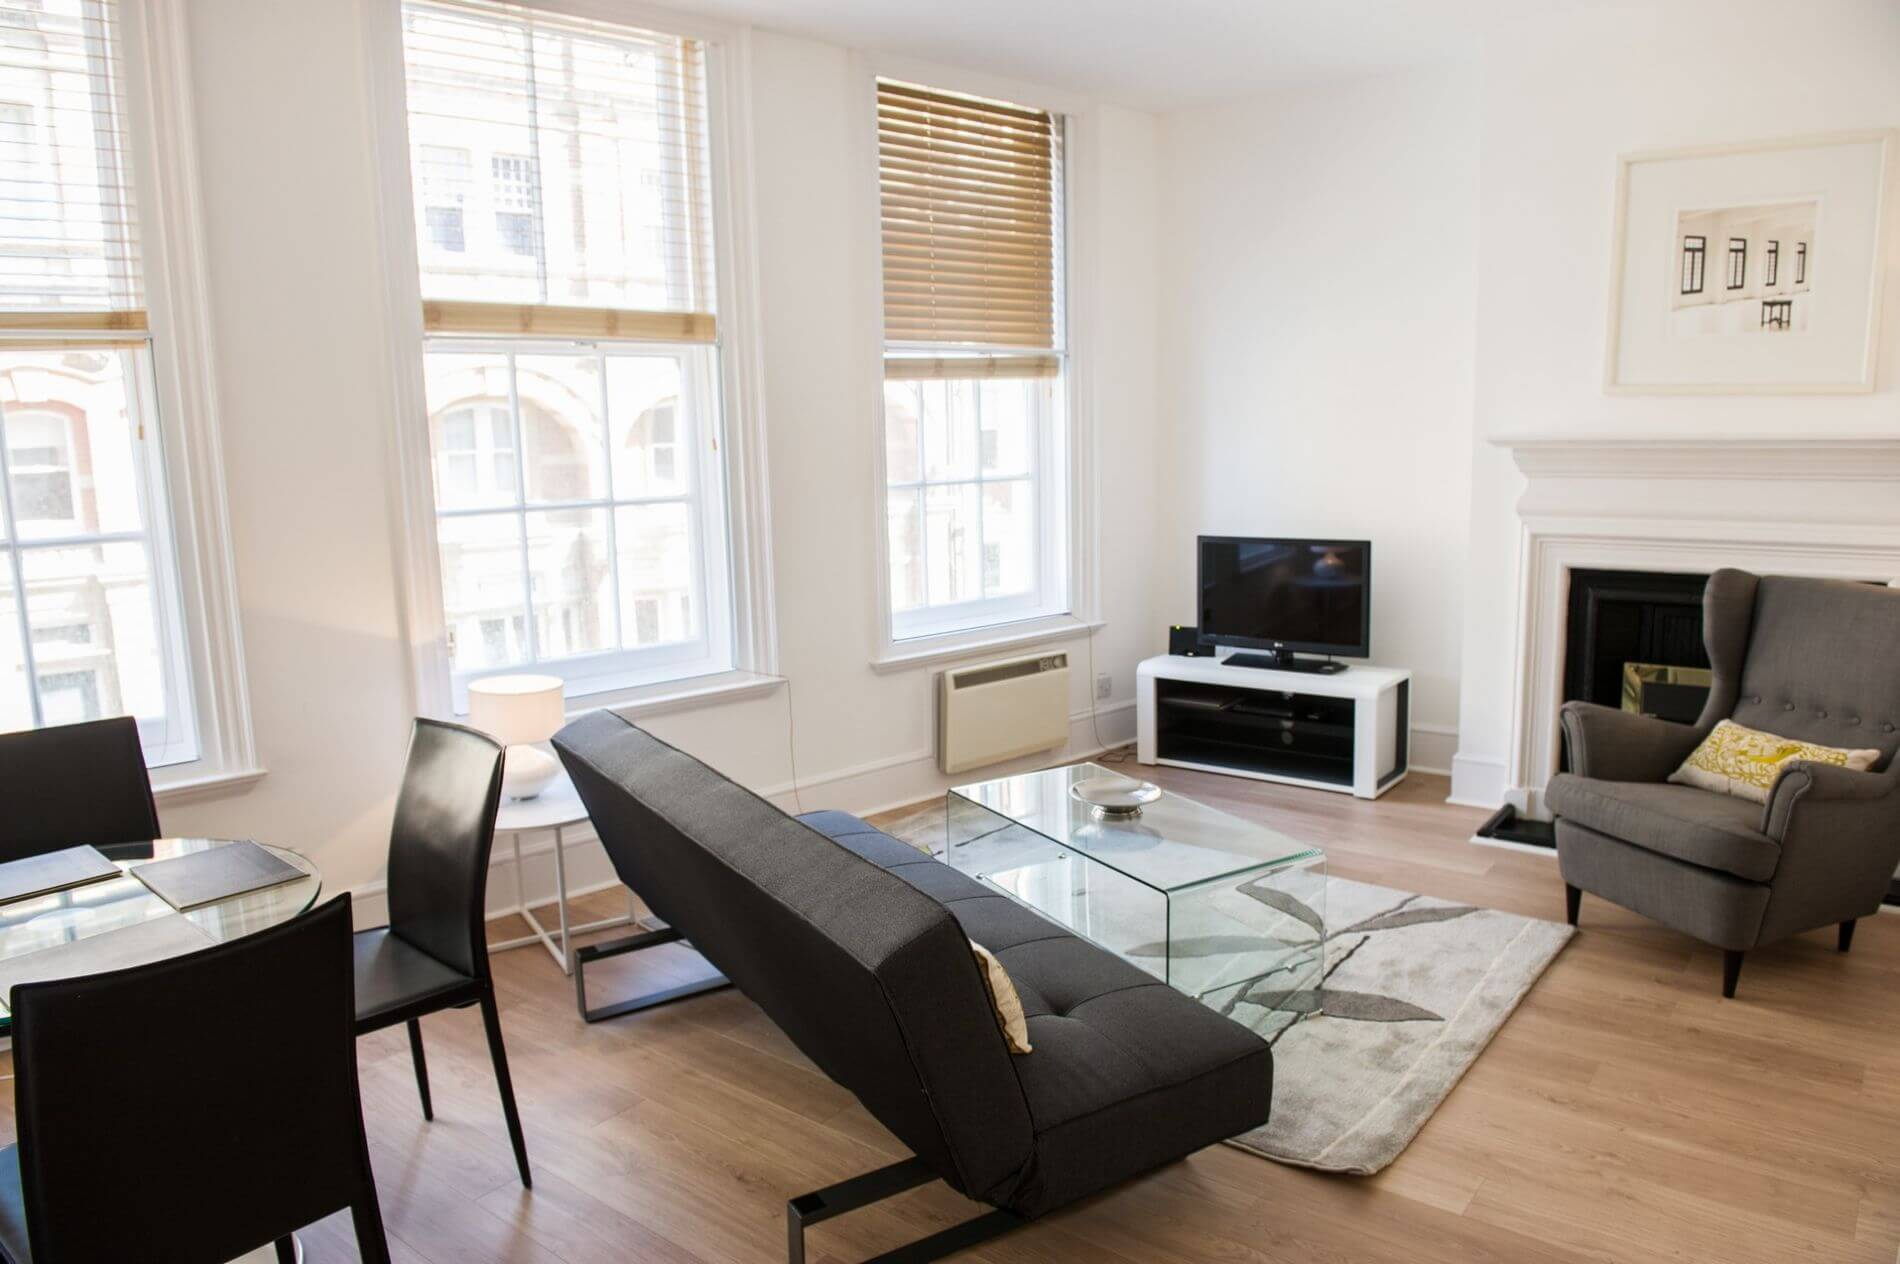 Furnished property for rent in London that allows pets